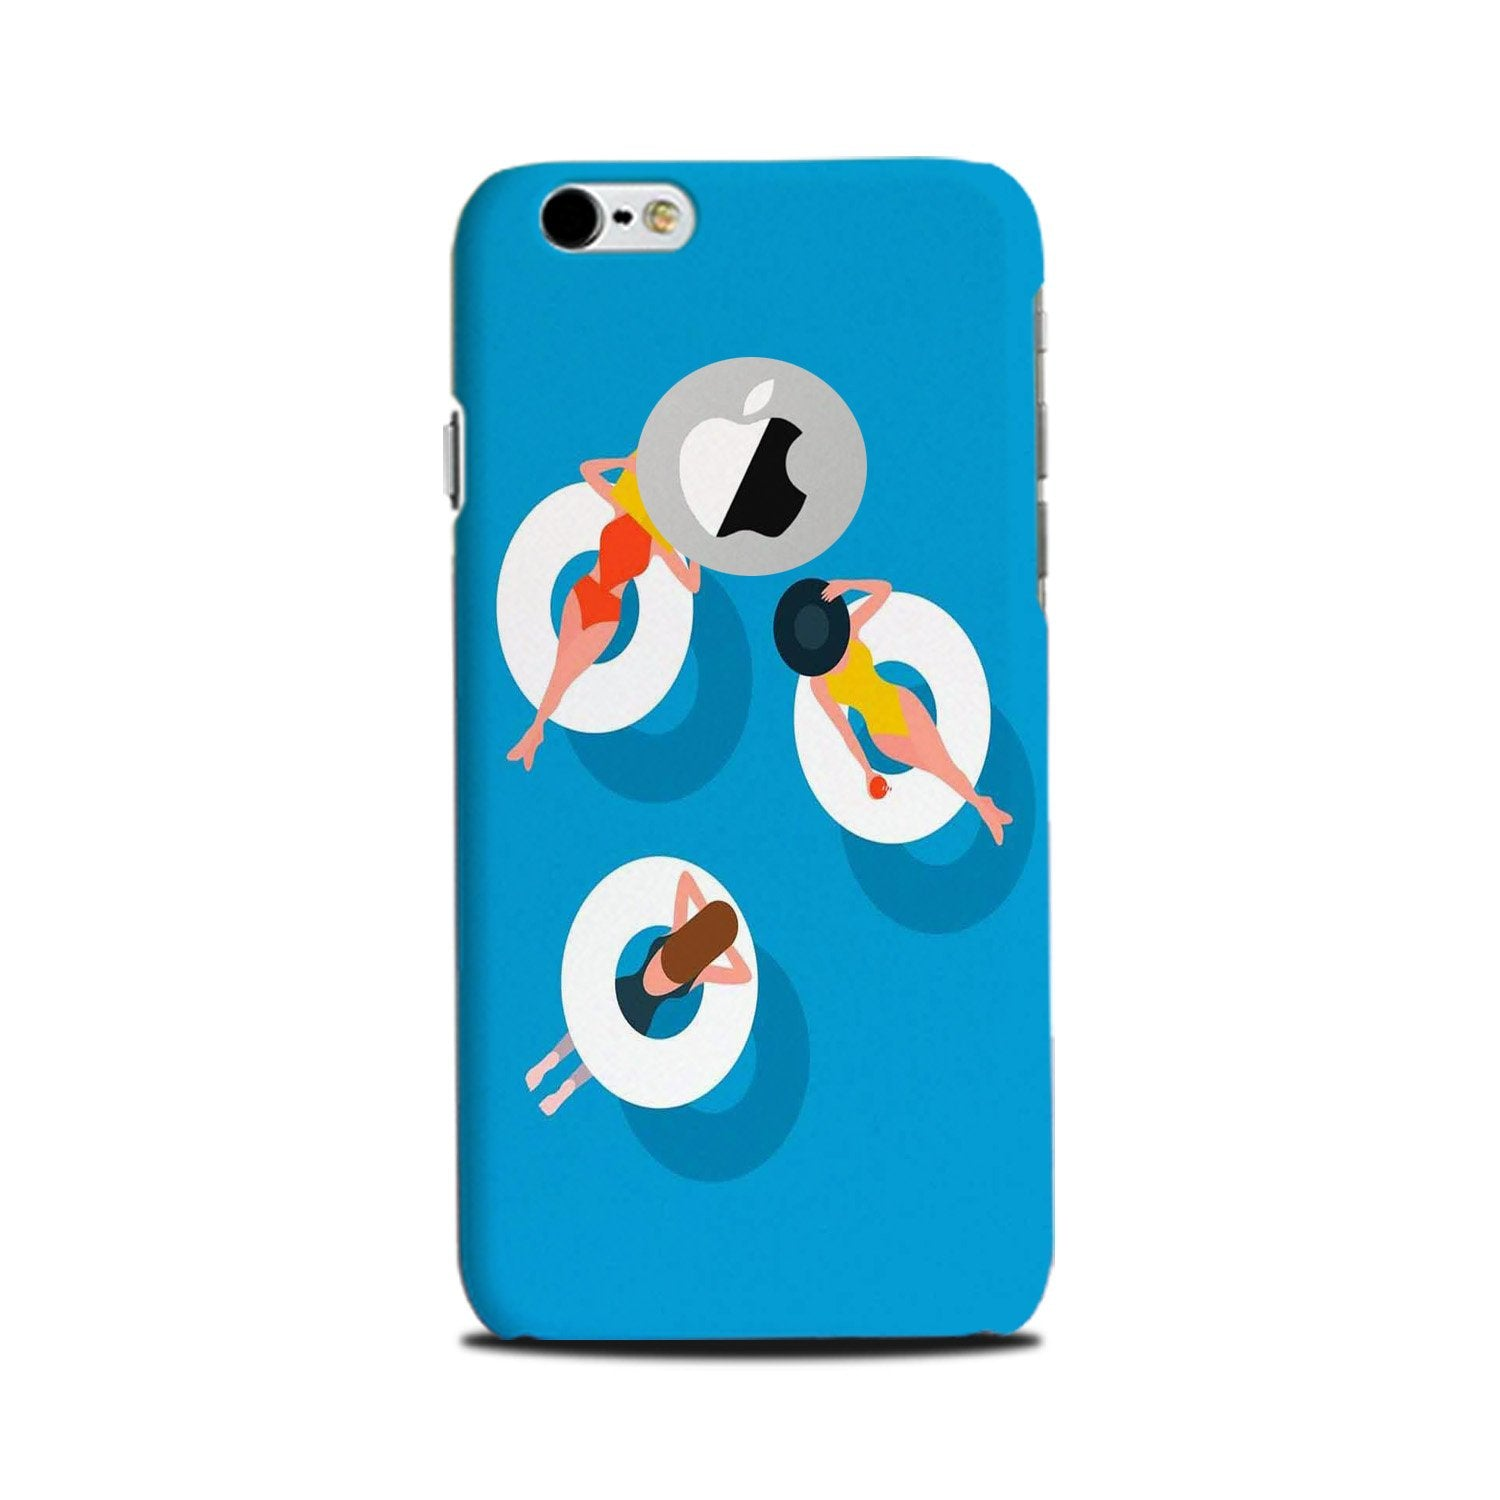 Girlish Mobile Back Case for iPhone 6 Plus / 6s Plus Logo Cut  (Design - 306)